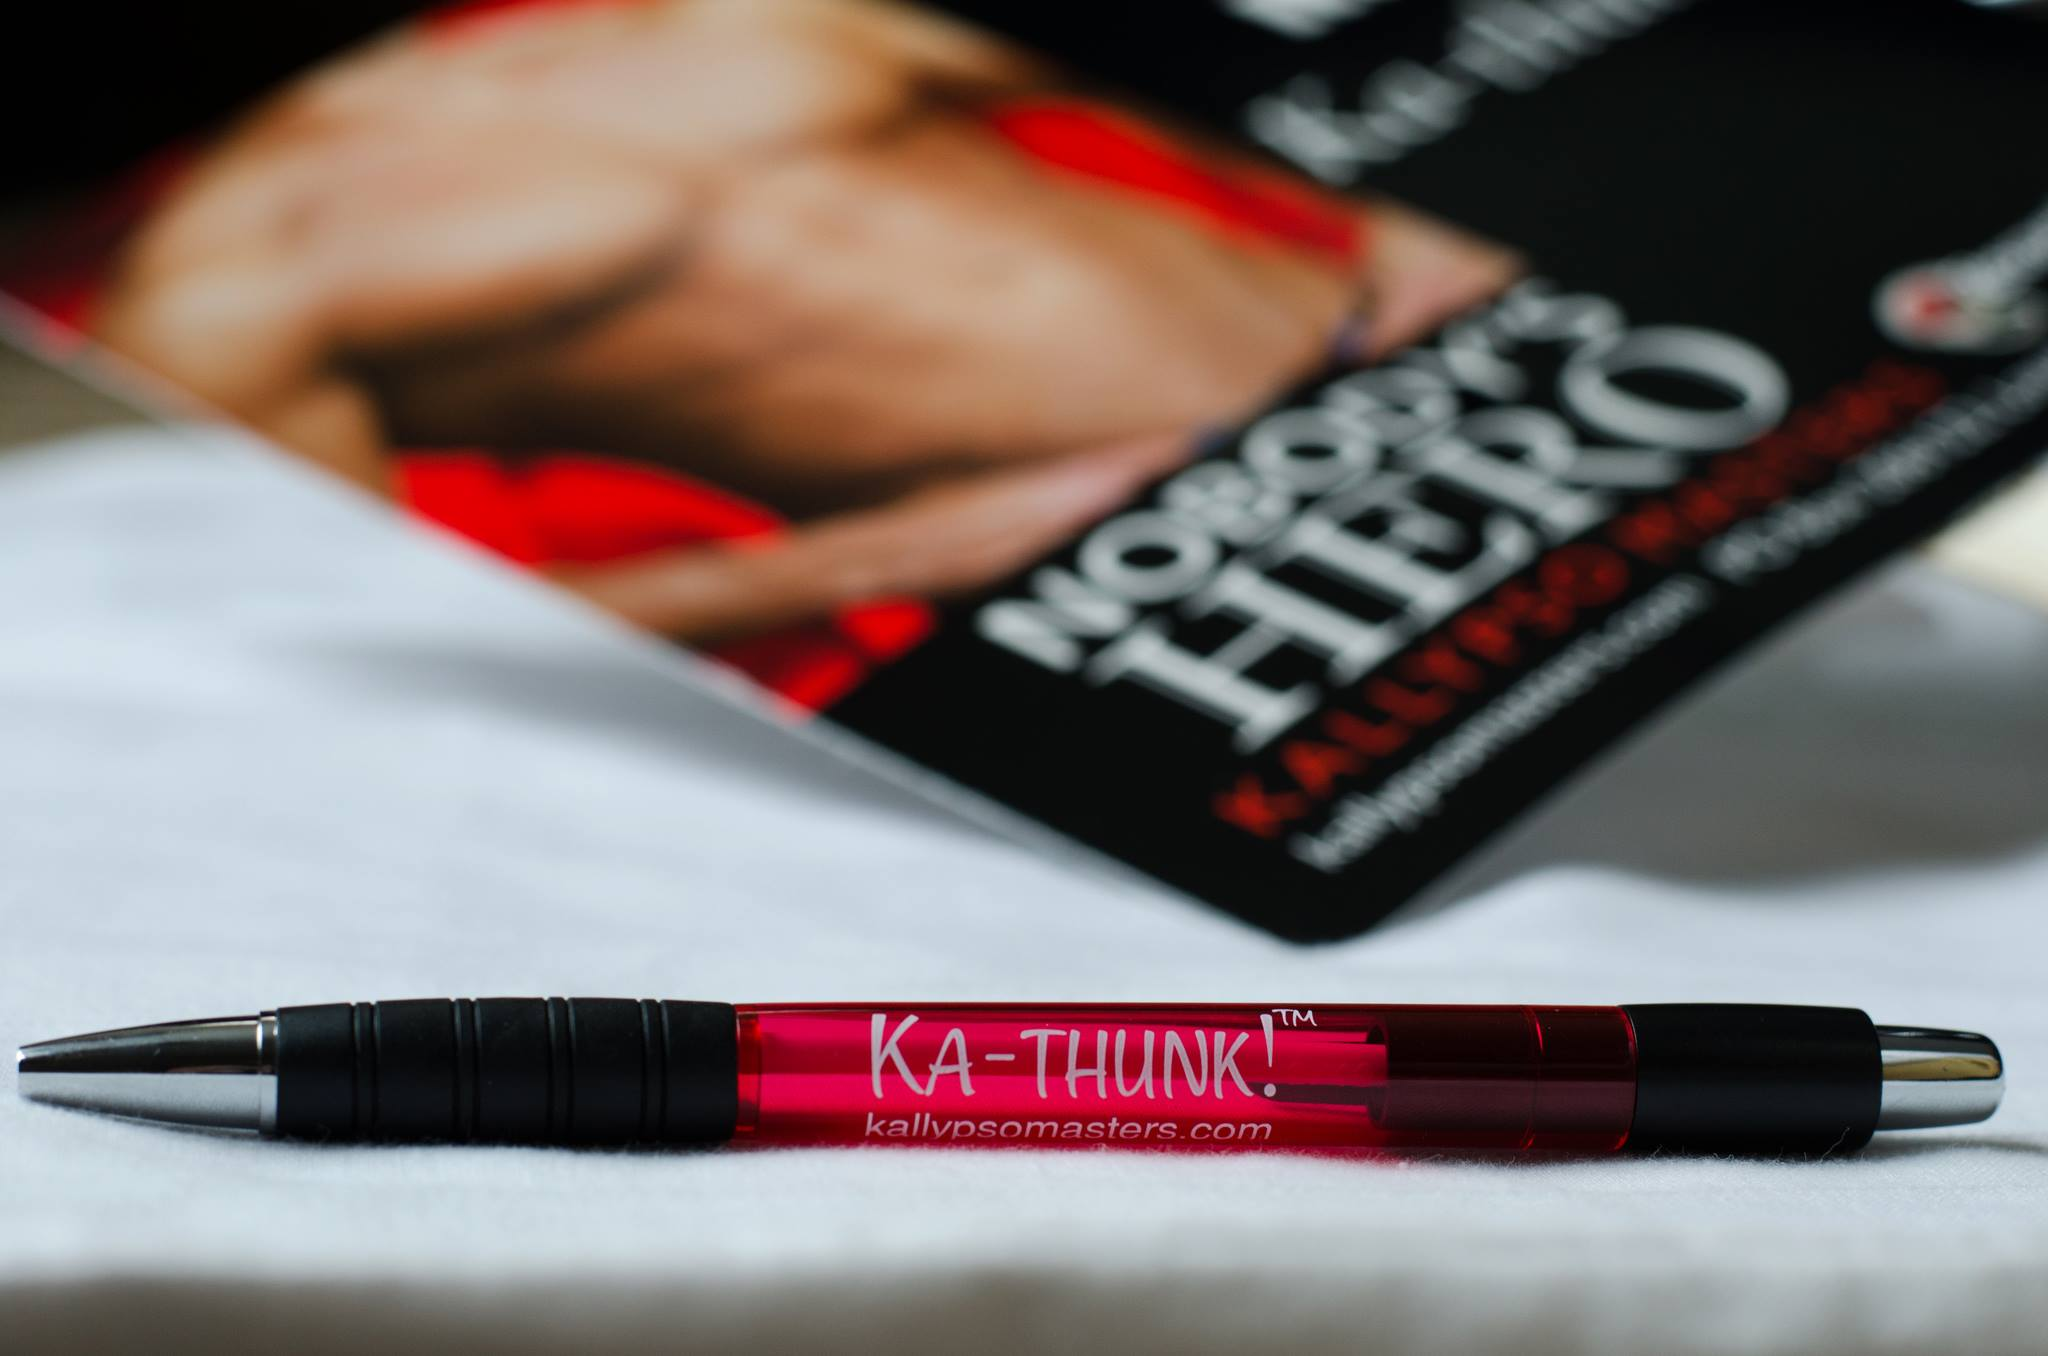 Ka-thunk pen and fan swag